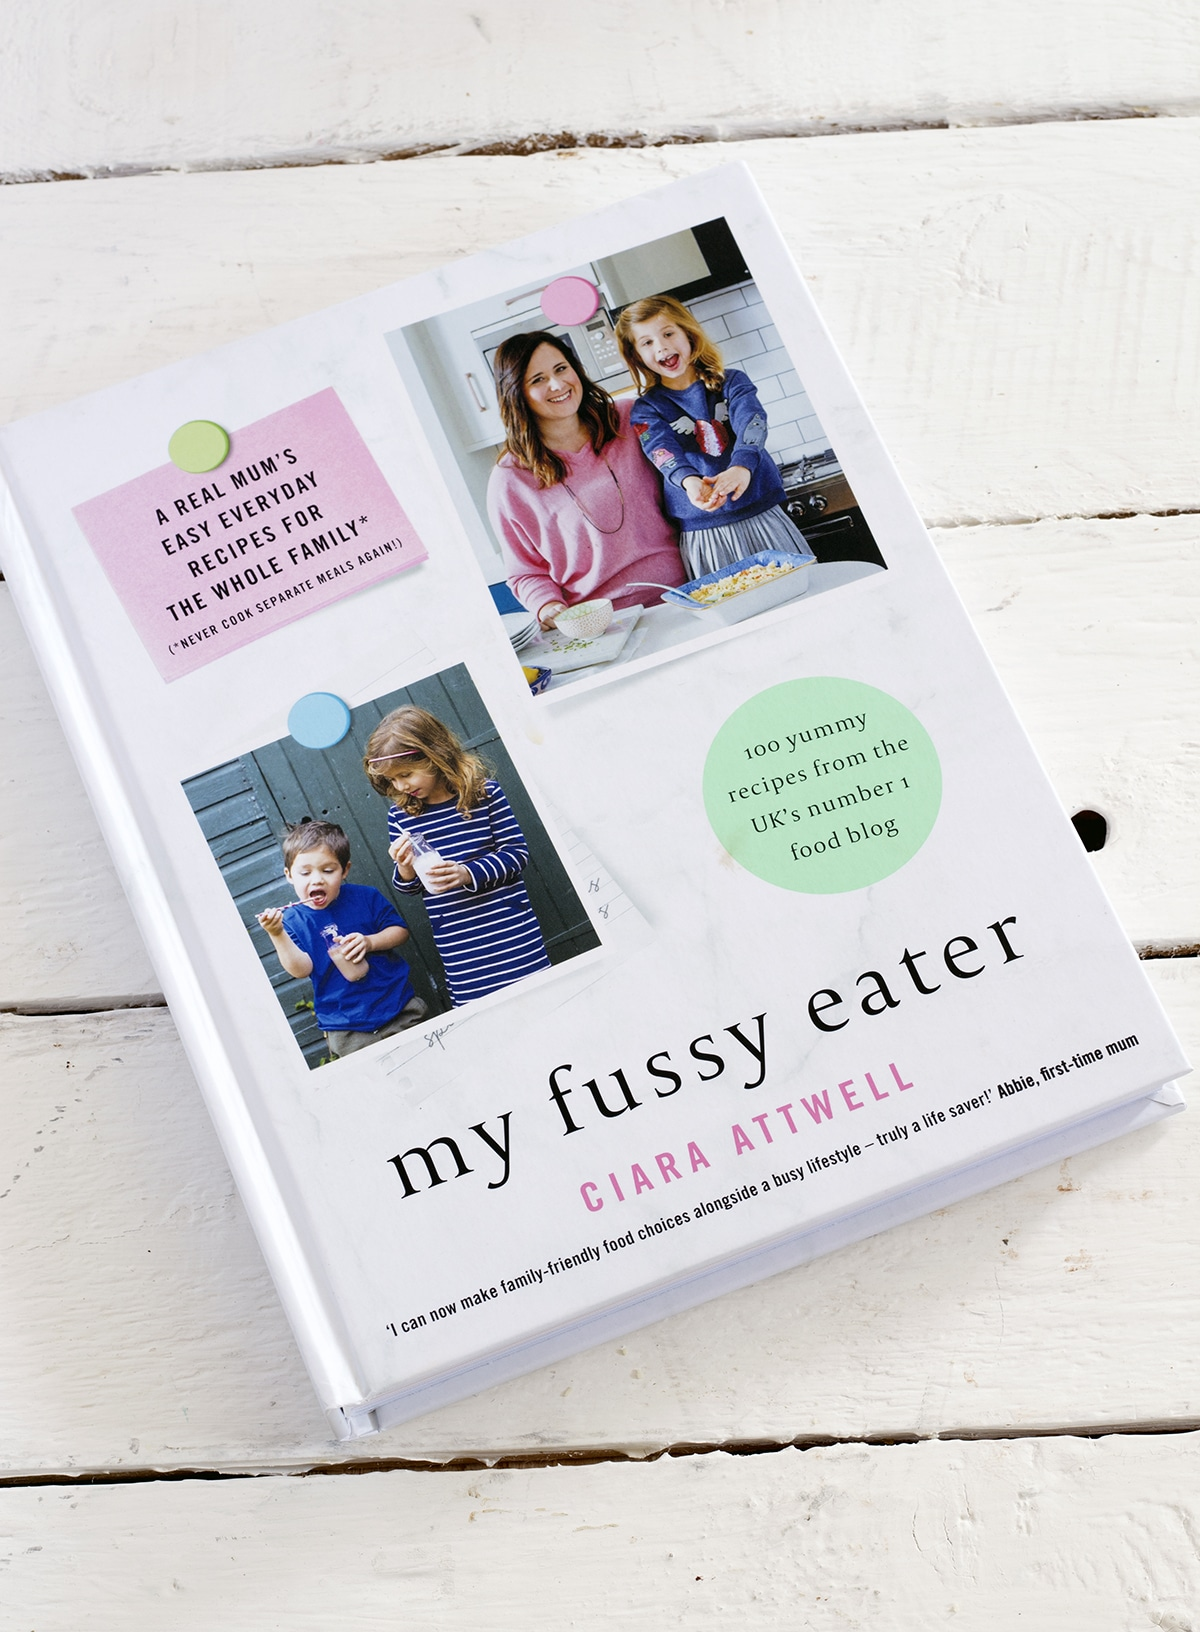 My Fussy Eater cookbook